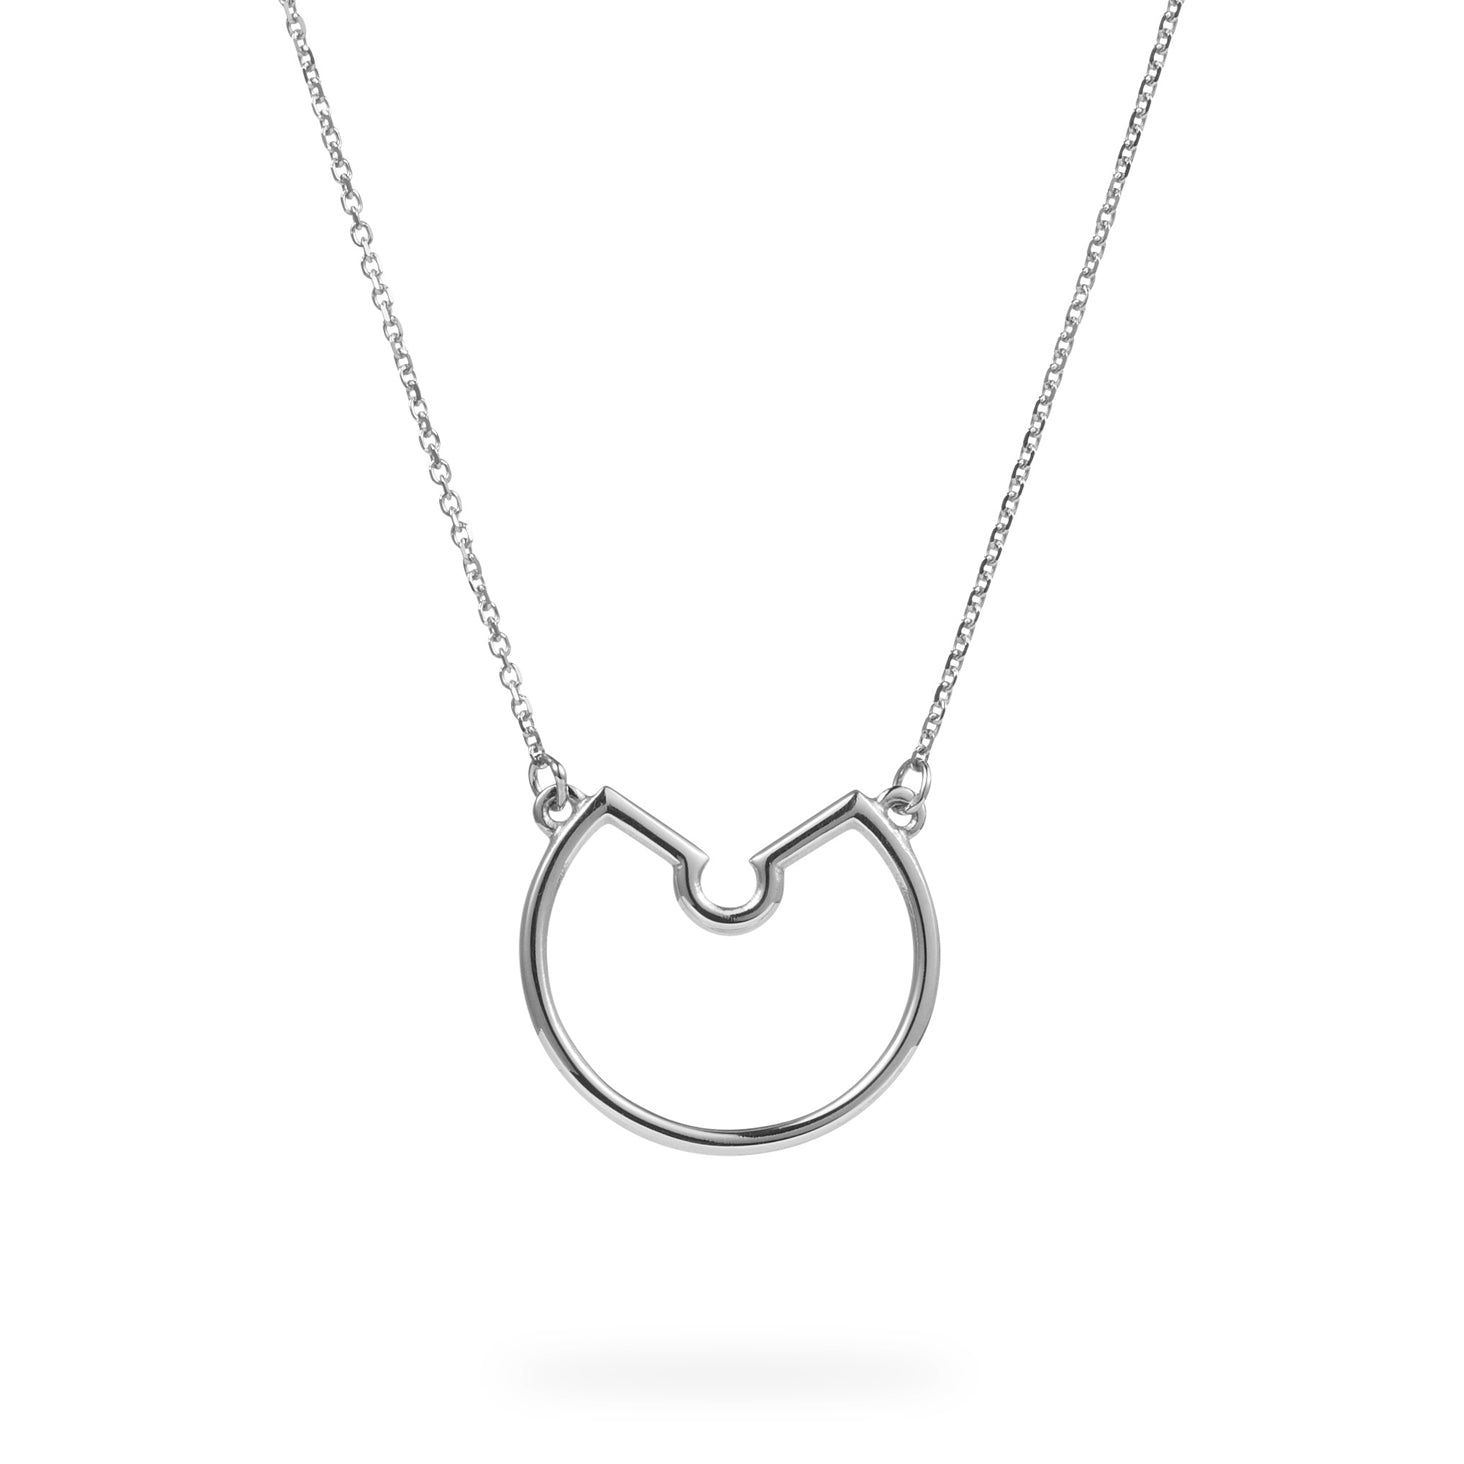 Luke Rose Jewellery small silver hoop necklace